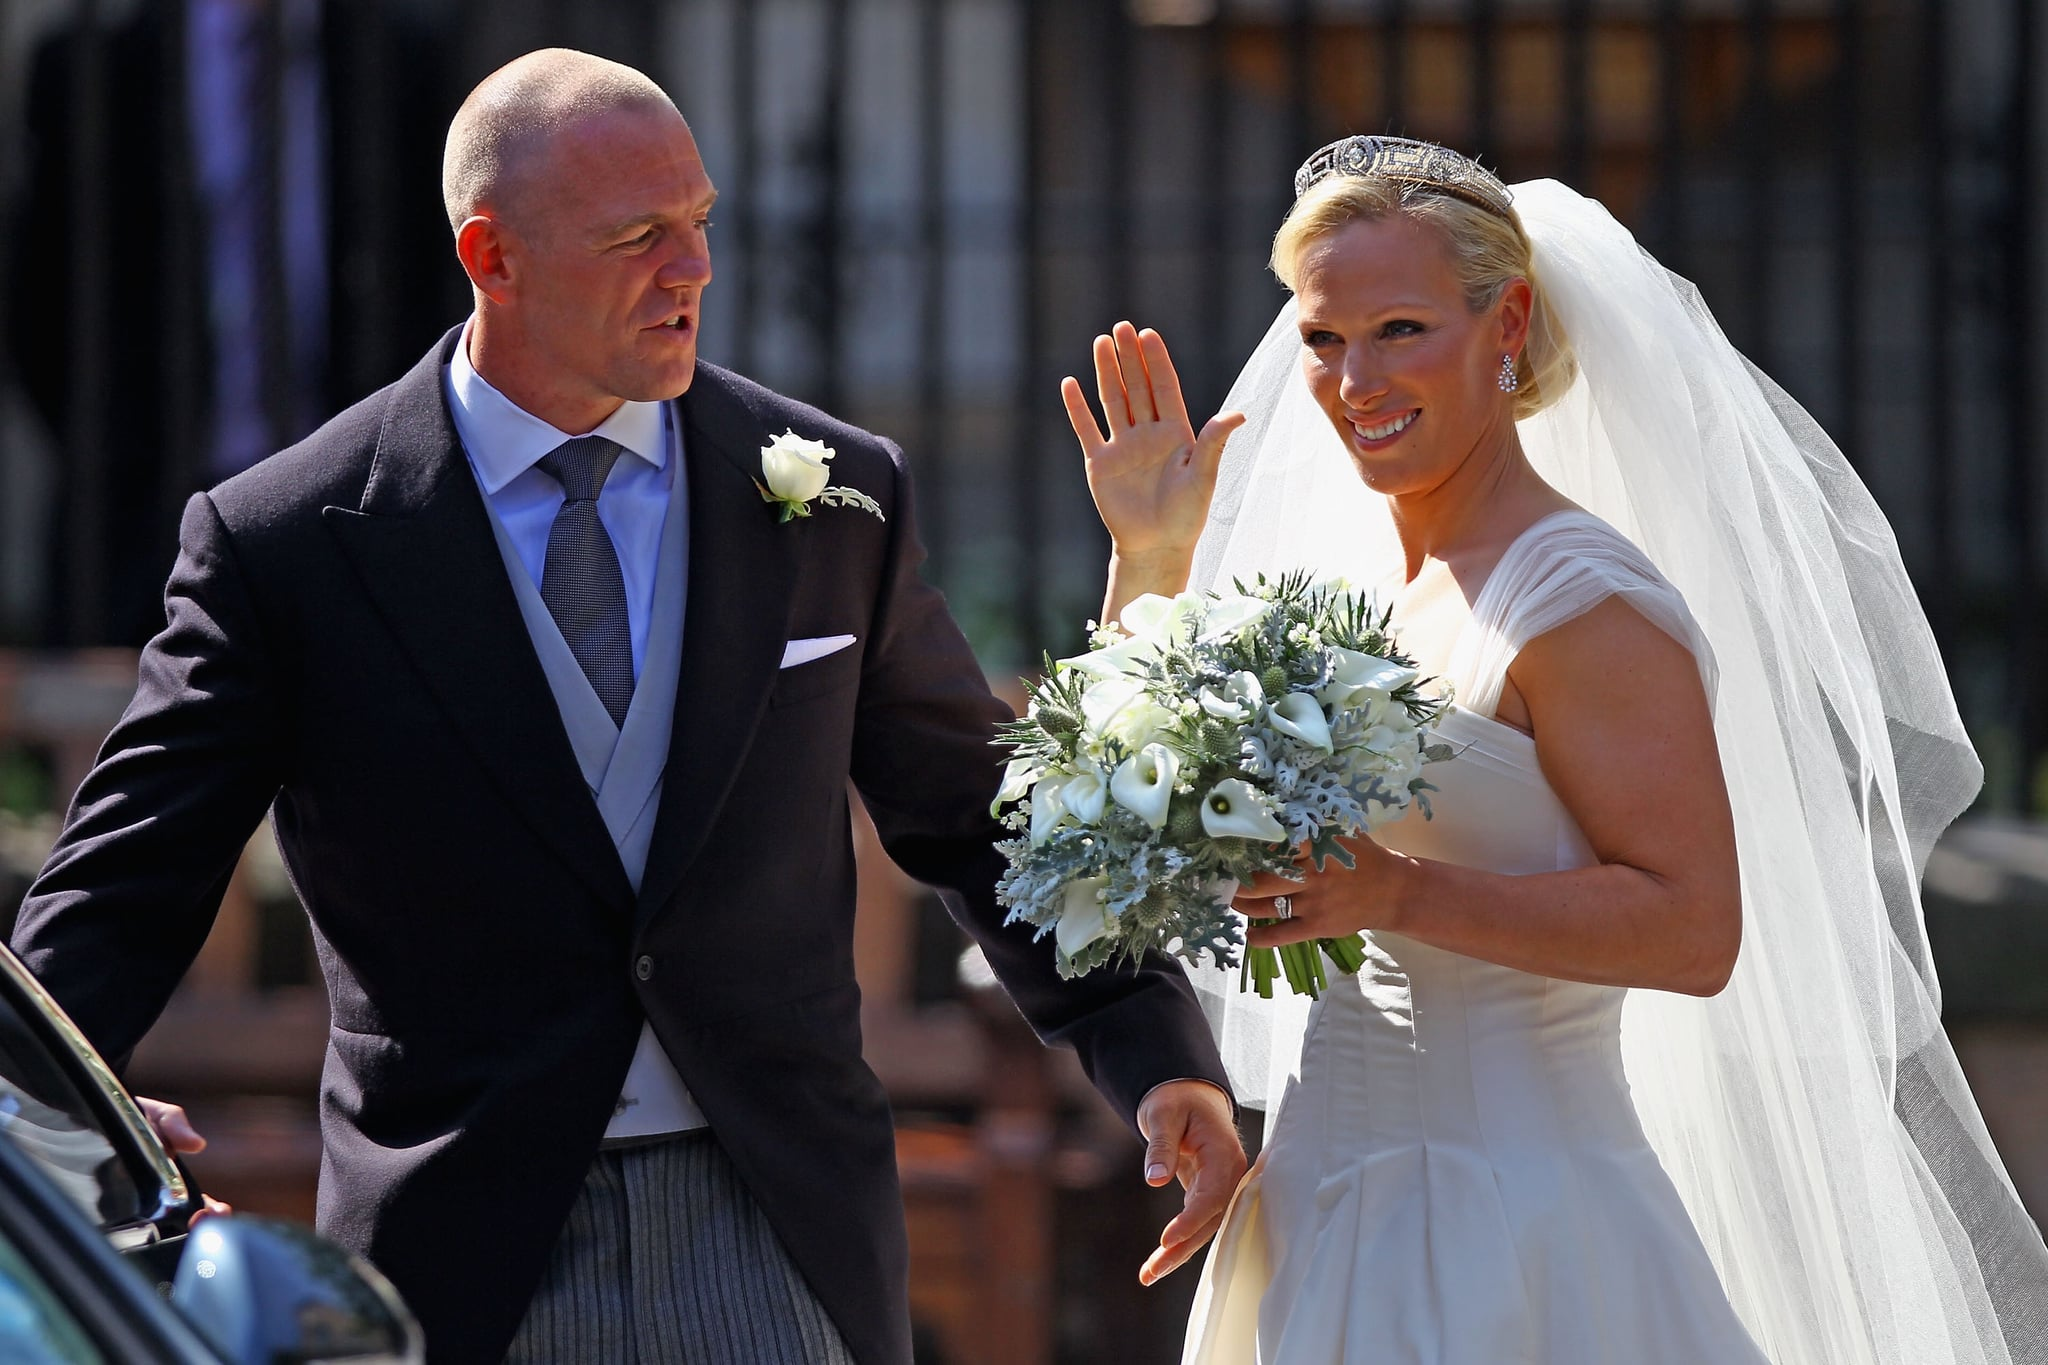 Pictures of zara phillips and mike tindalls scottish wedding see pictures of zara phillips and mike tindalls scottish wedding see her wedding dress popsugar fashion australia ombrellifo Images